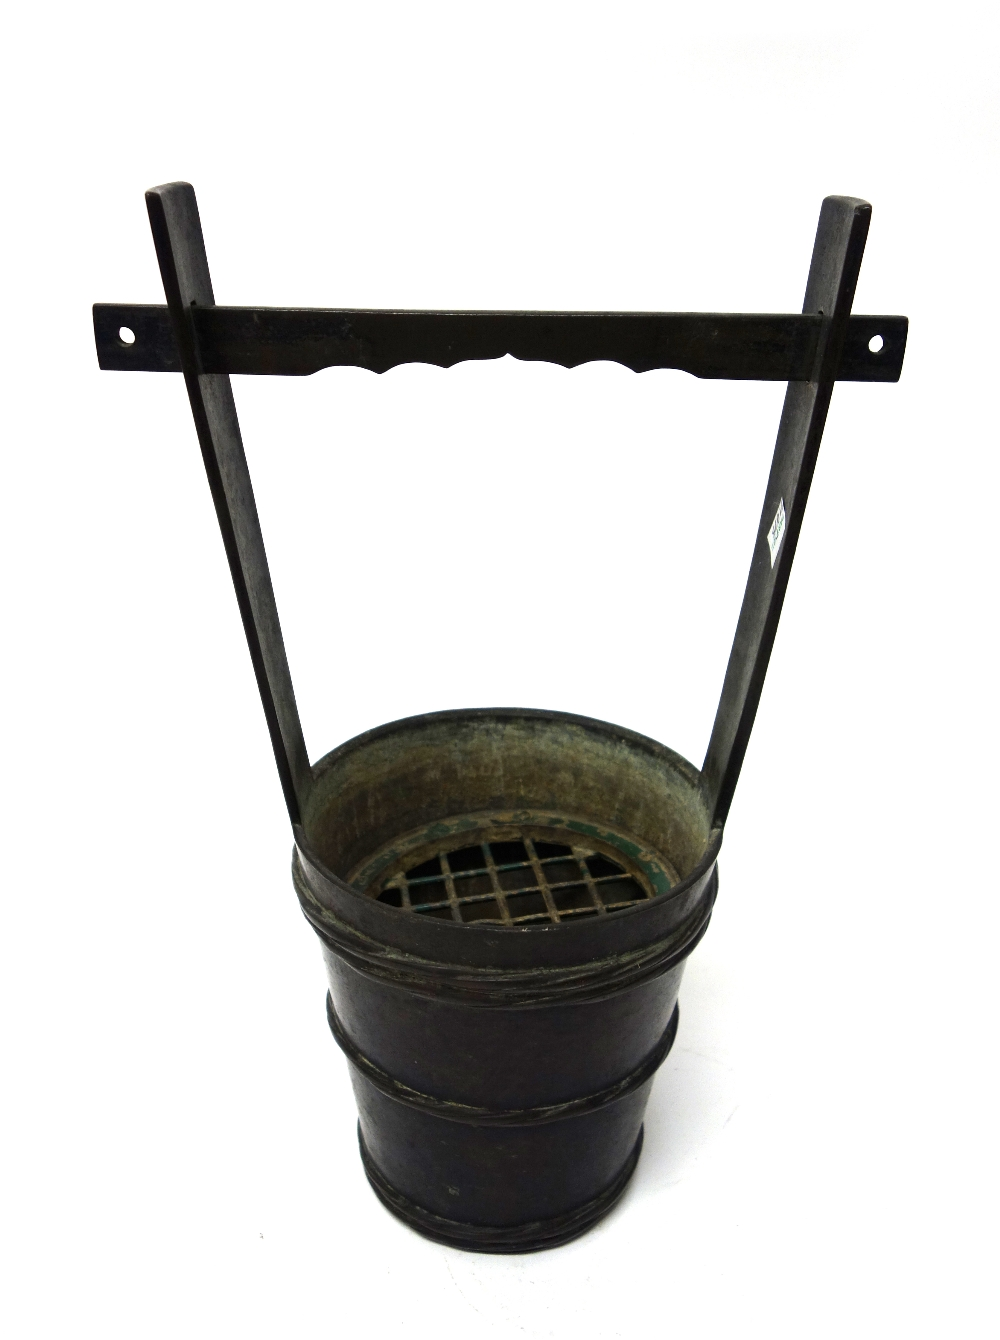 Lot 1425 - A Japanese bronze flower vase in the form of a well bucket, Meiji period, 36.5cm. high.